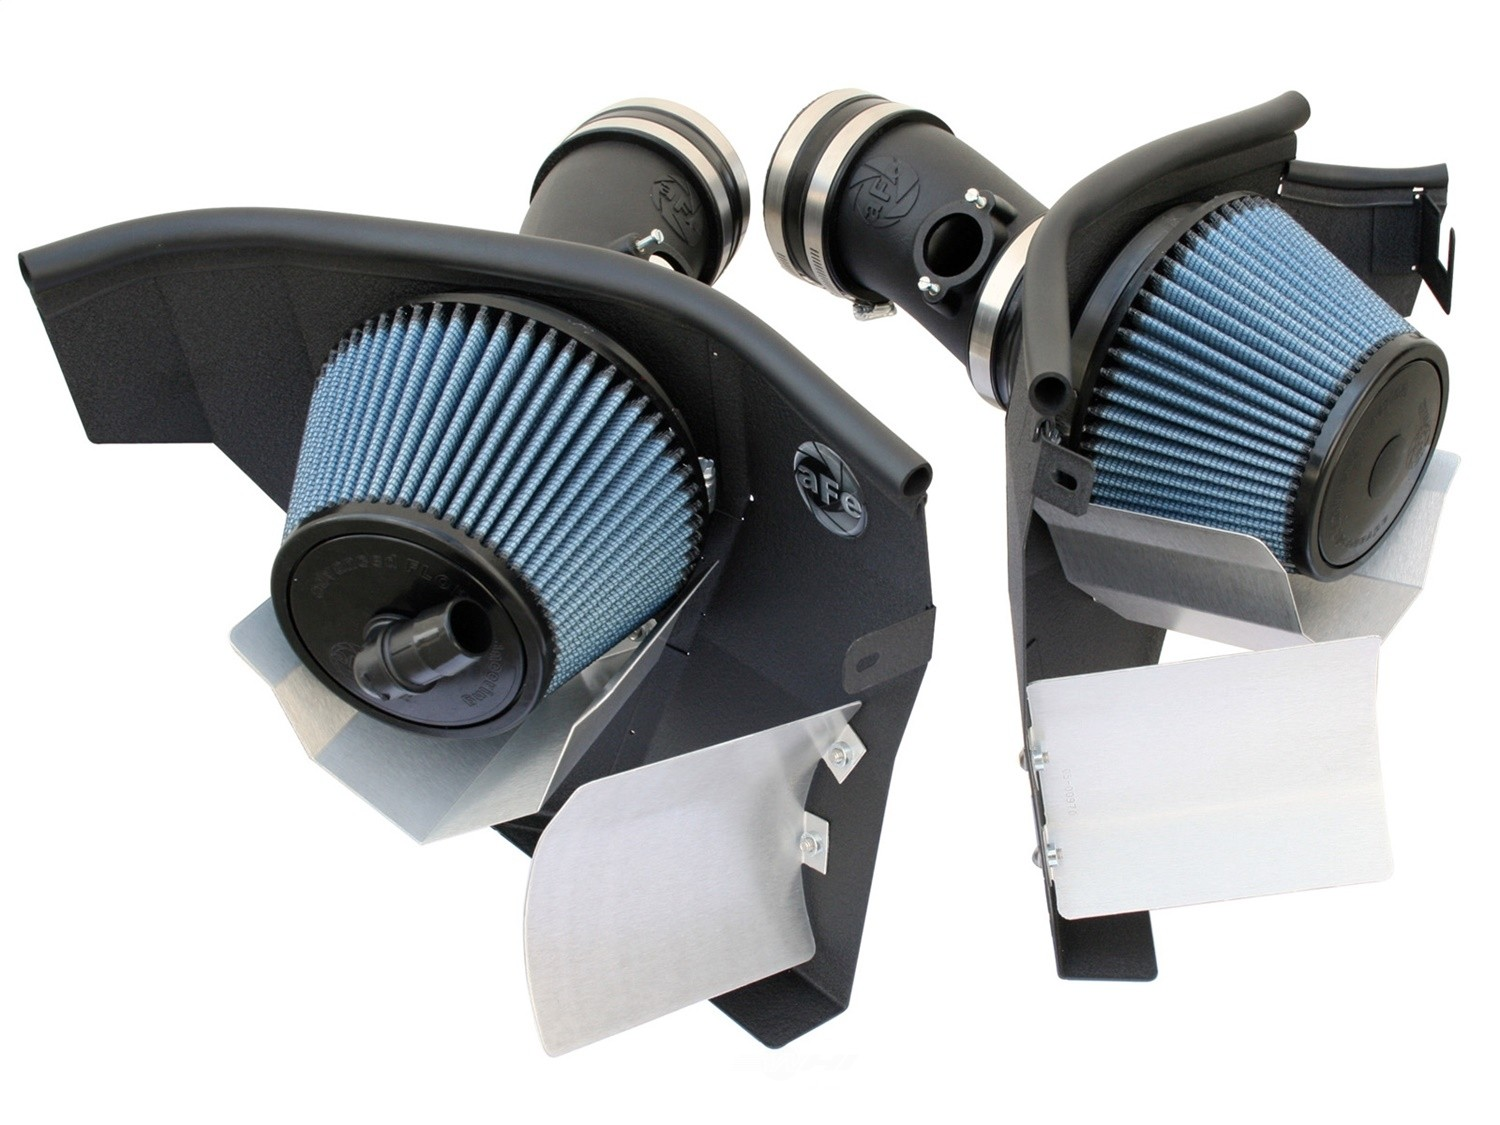 AFE FILTERS - MagnumForce Stage-2 Pro 5R Engine Cold Air Intake Performance Kit - A5F 54-11272